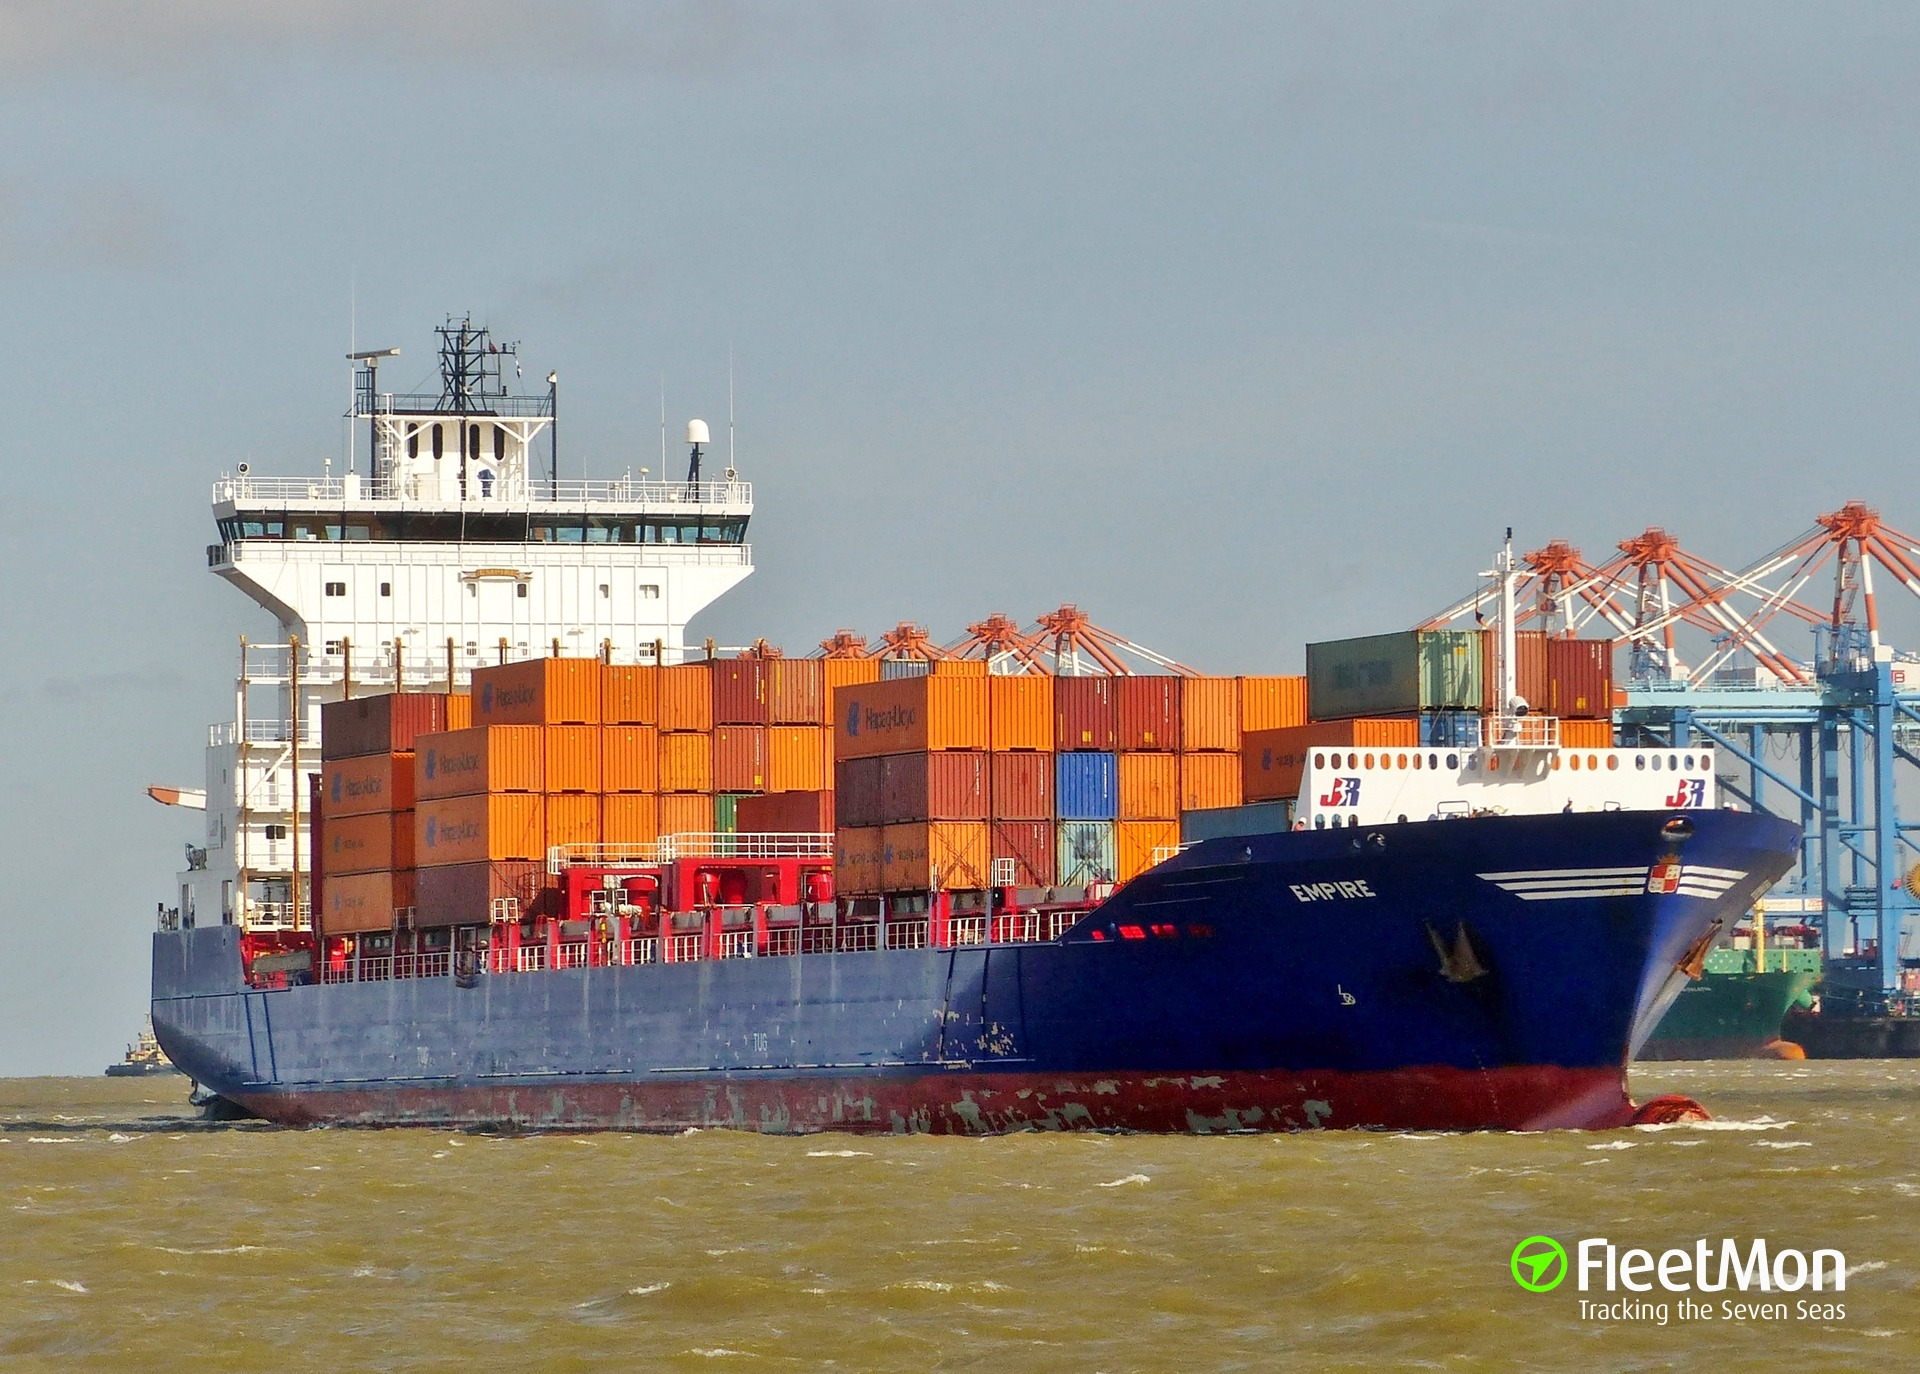 Dutch boxship Empire grounded and maybe refloated